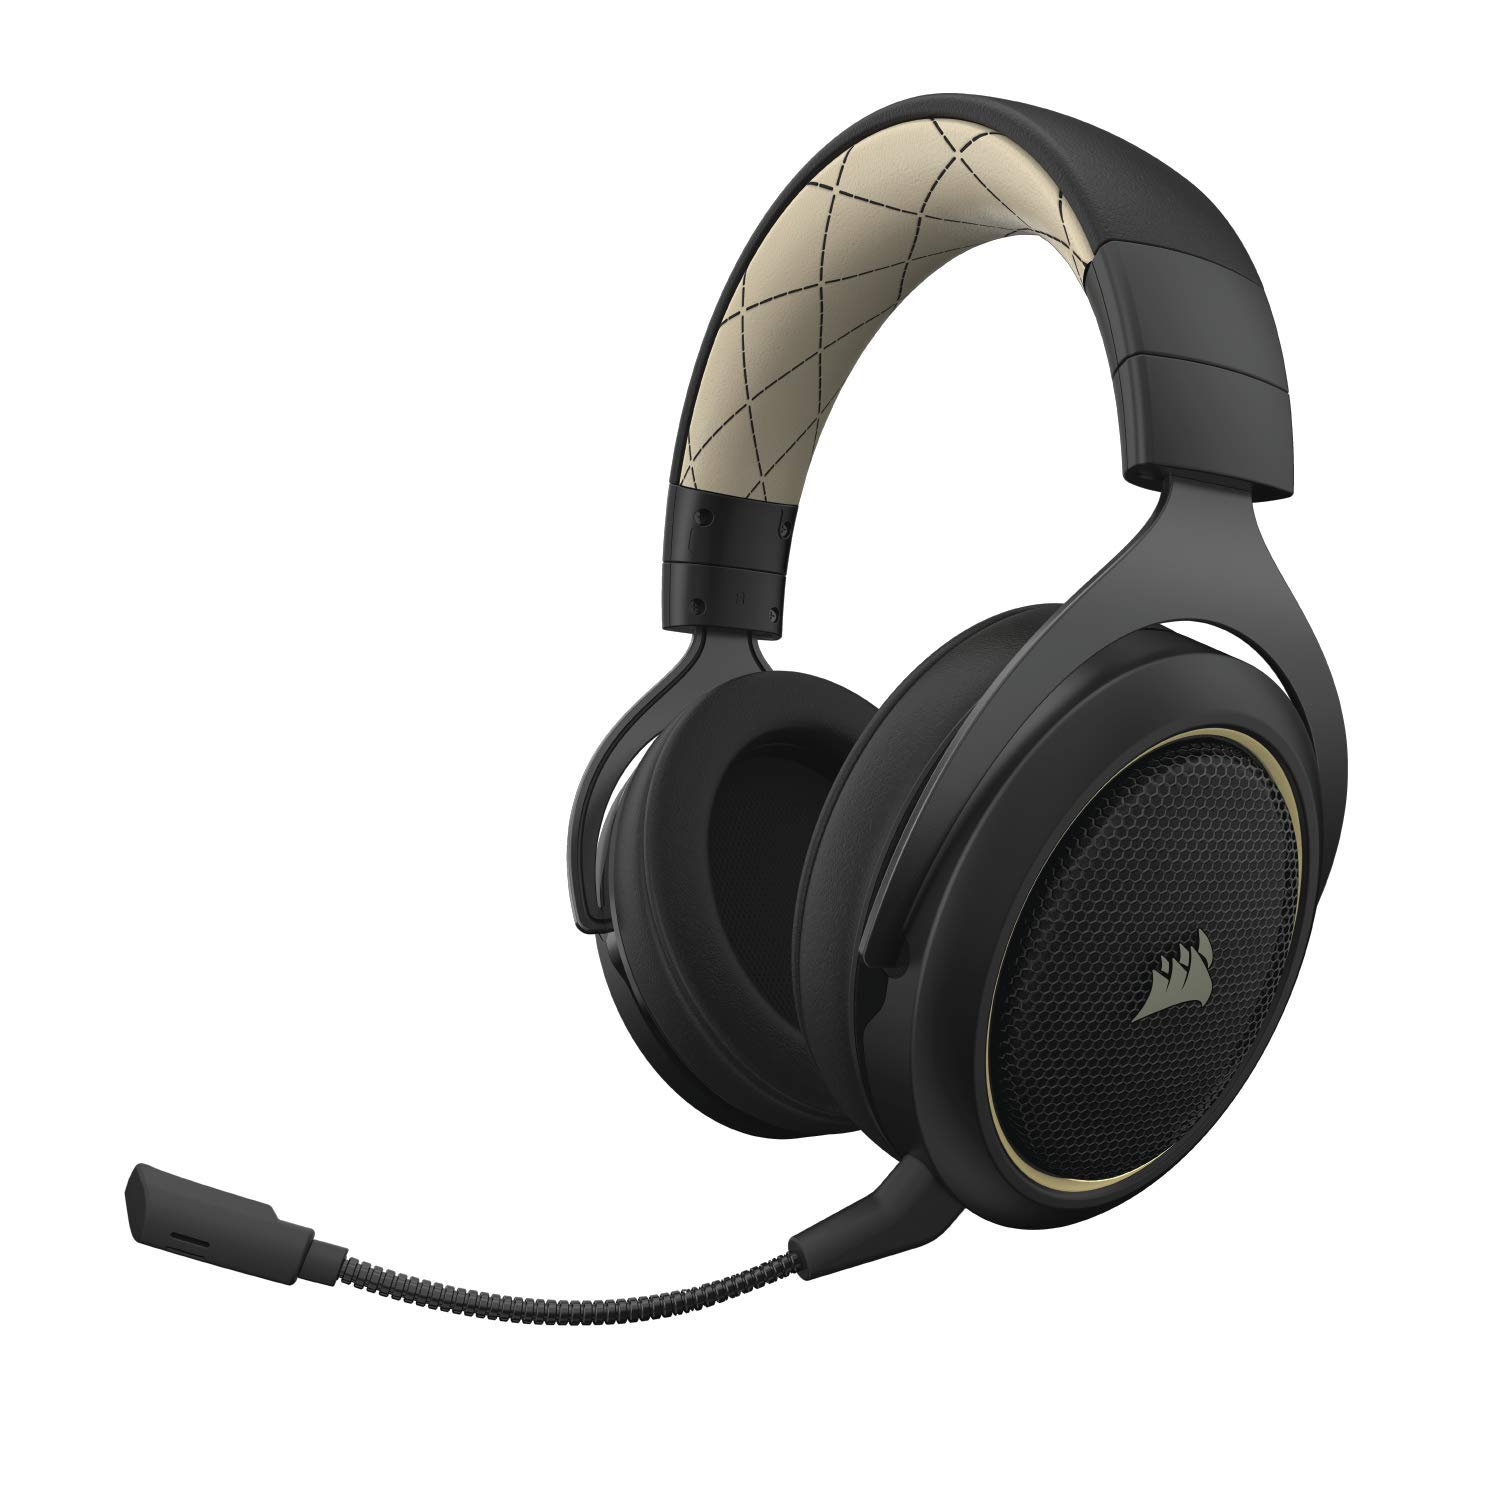 CORSAIR HS70 SE Wireless - 7.1 Surround Sound Gaming Headset - Discord Certified Headphones - Special Edition by Corsair (Image #8)